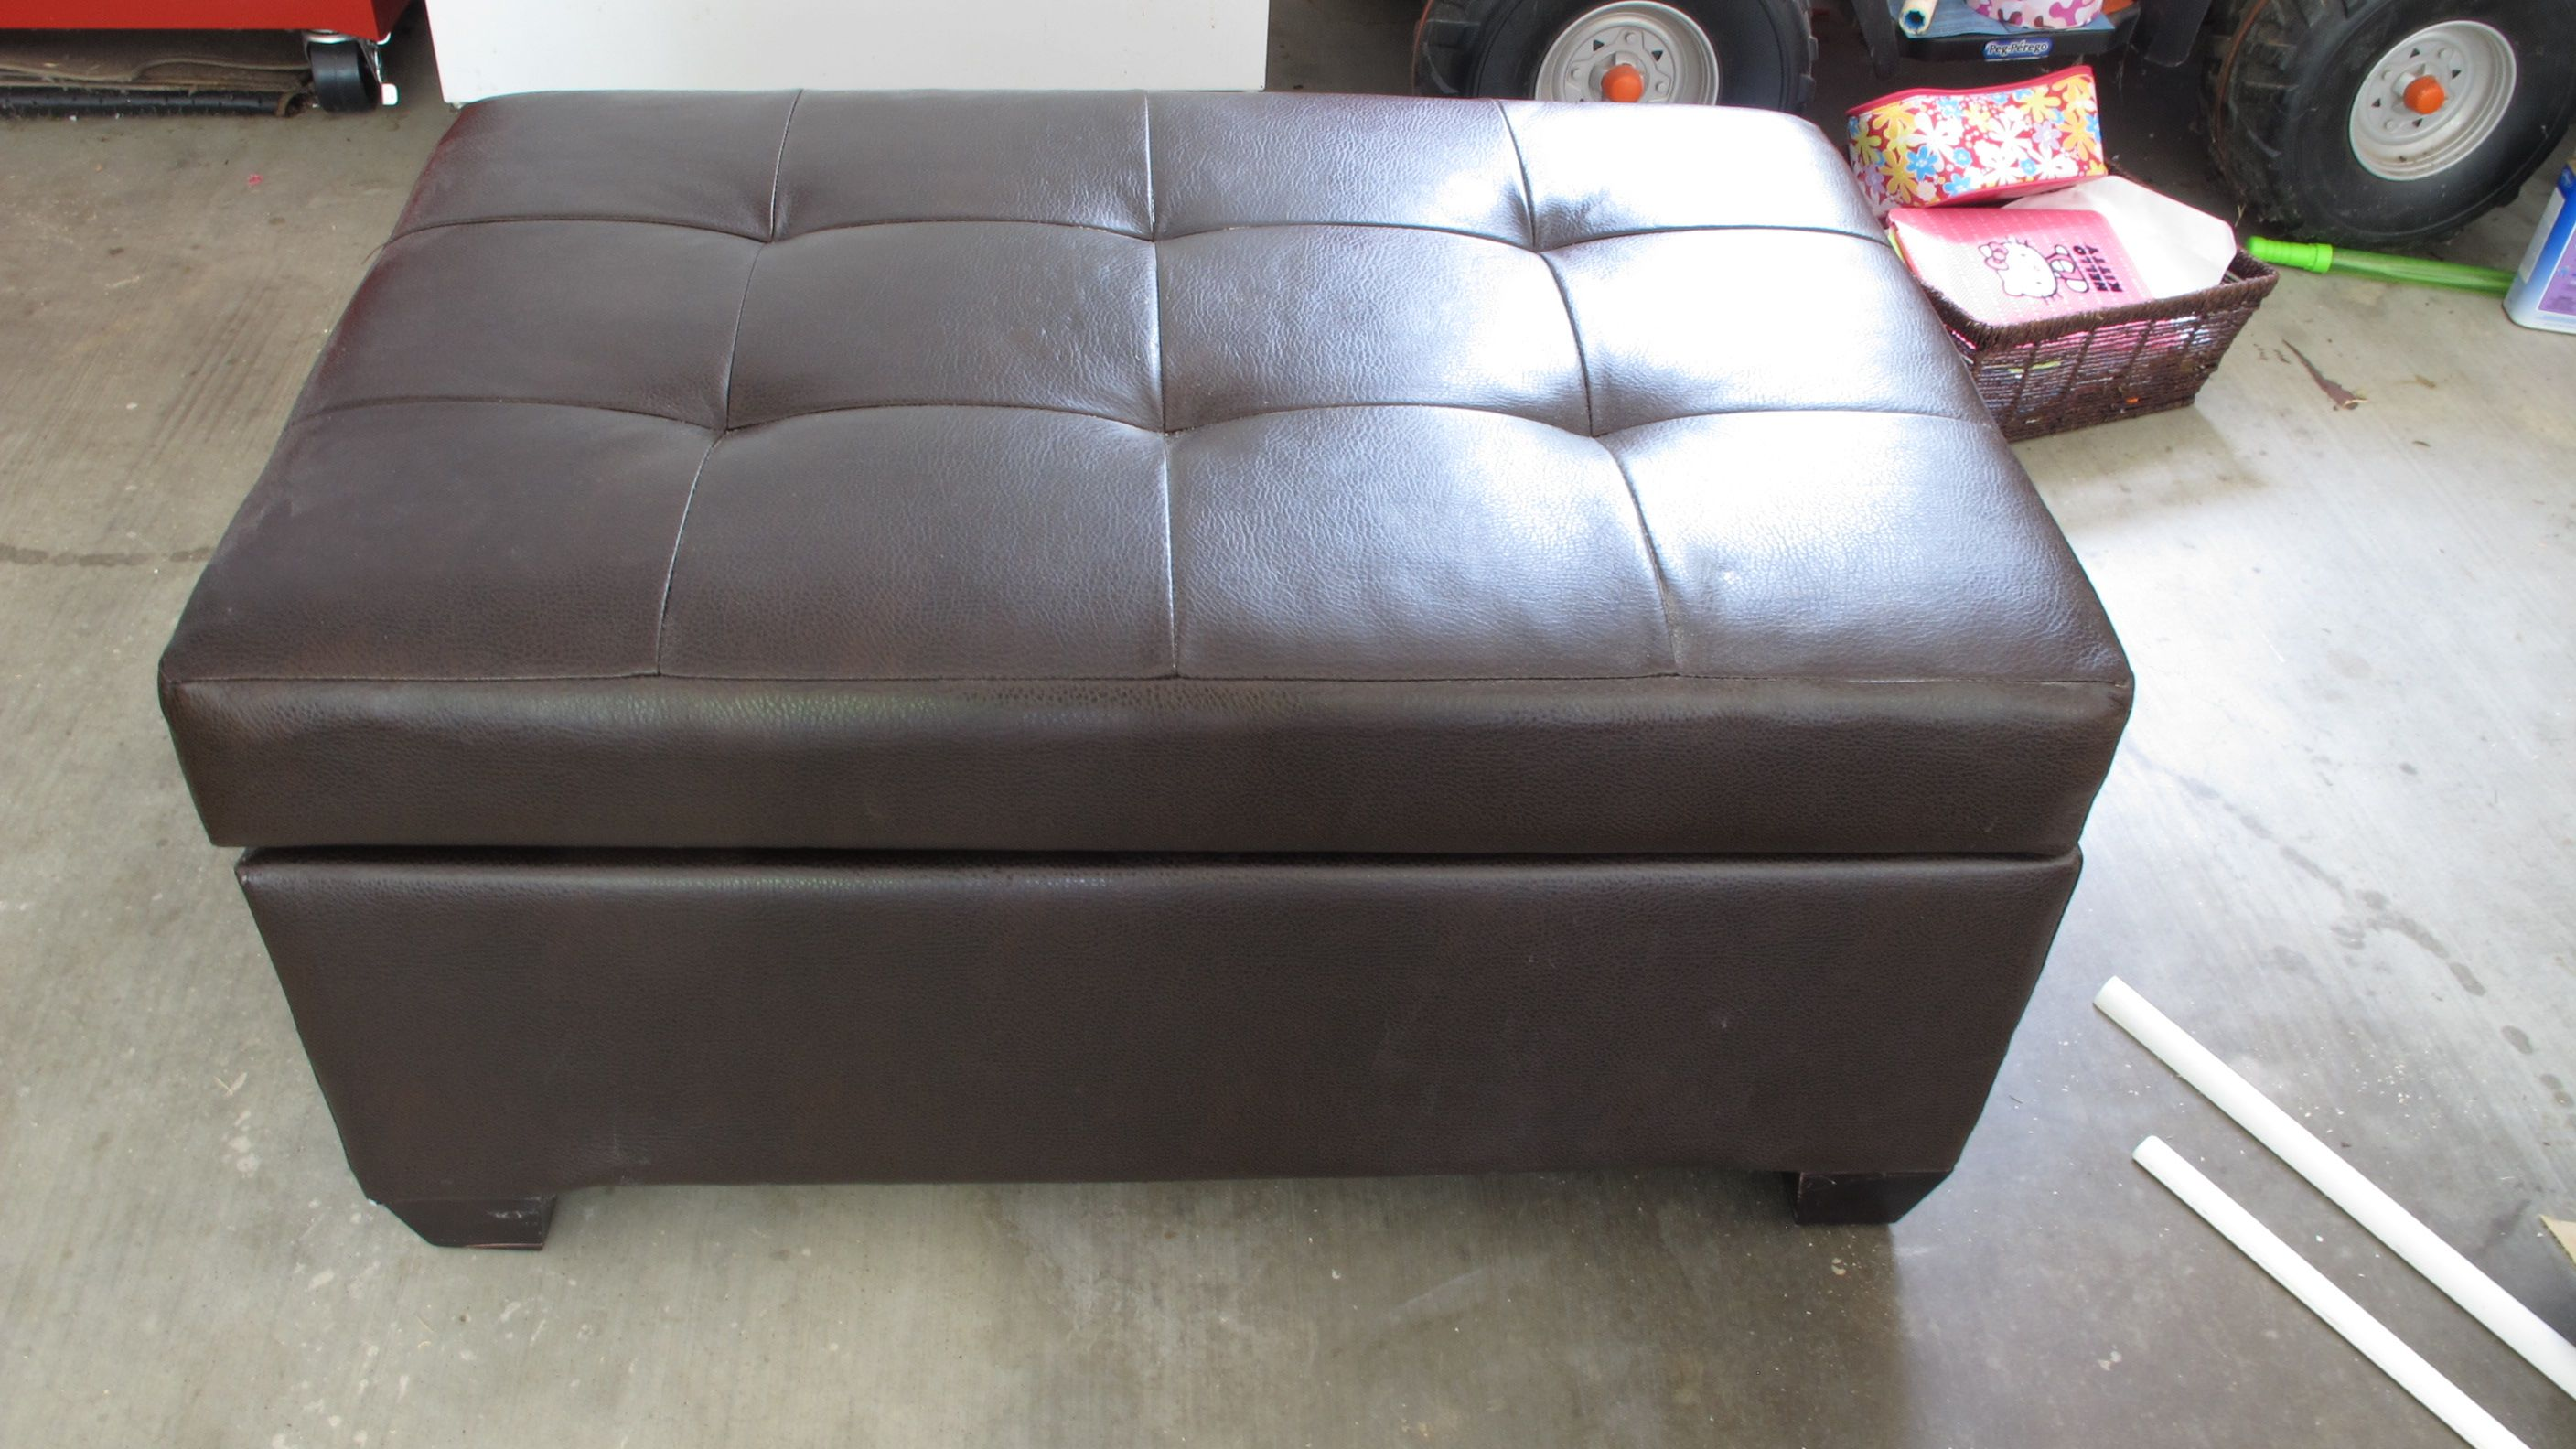 How to build a storage ottoman - How To Make A Slipcover For A Large Ottoman